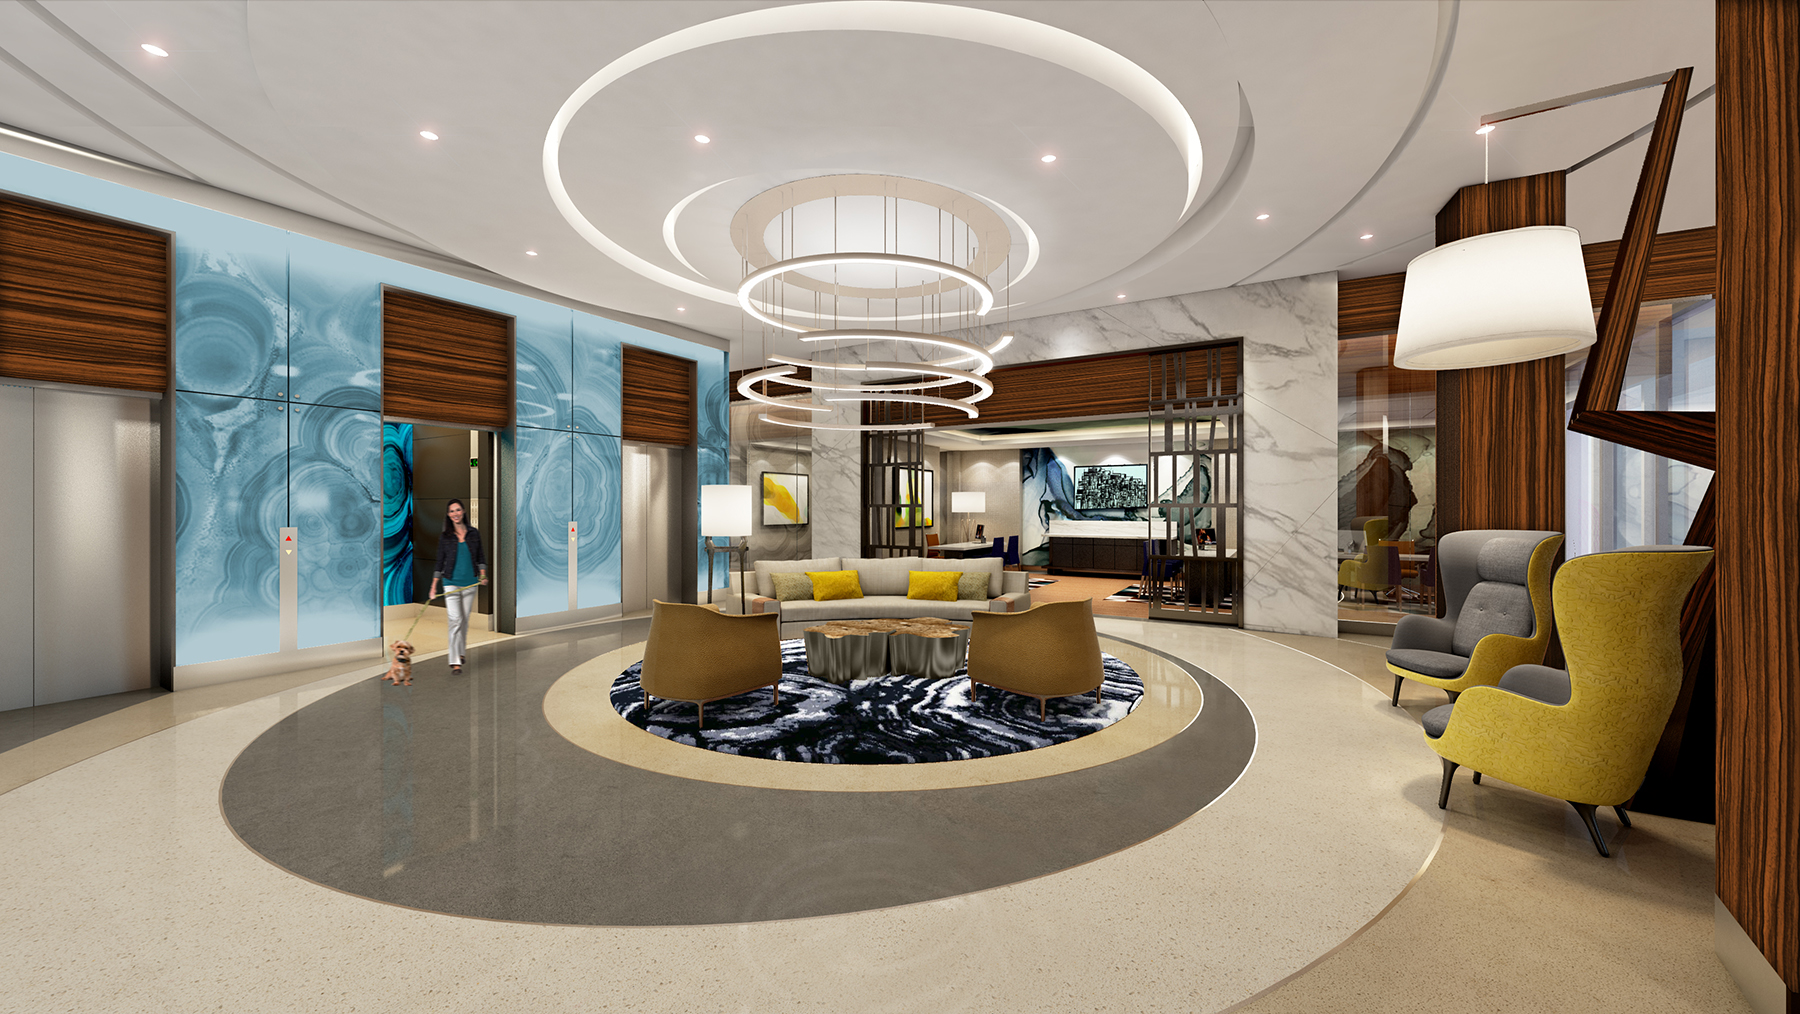 CityPlace Doral Announces Leasing For Its Luxury